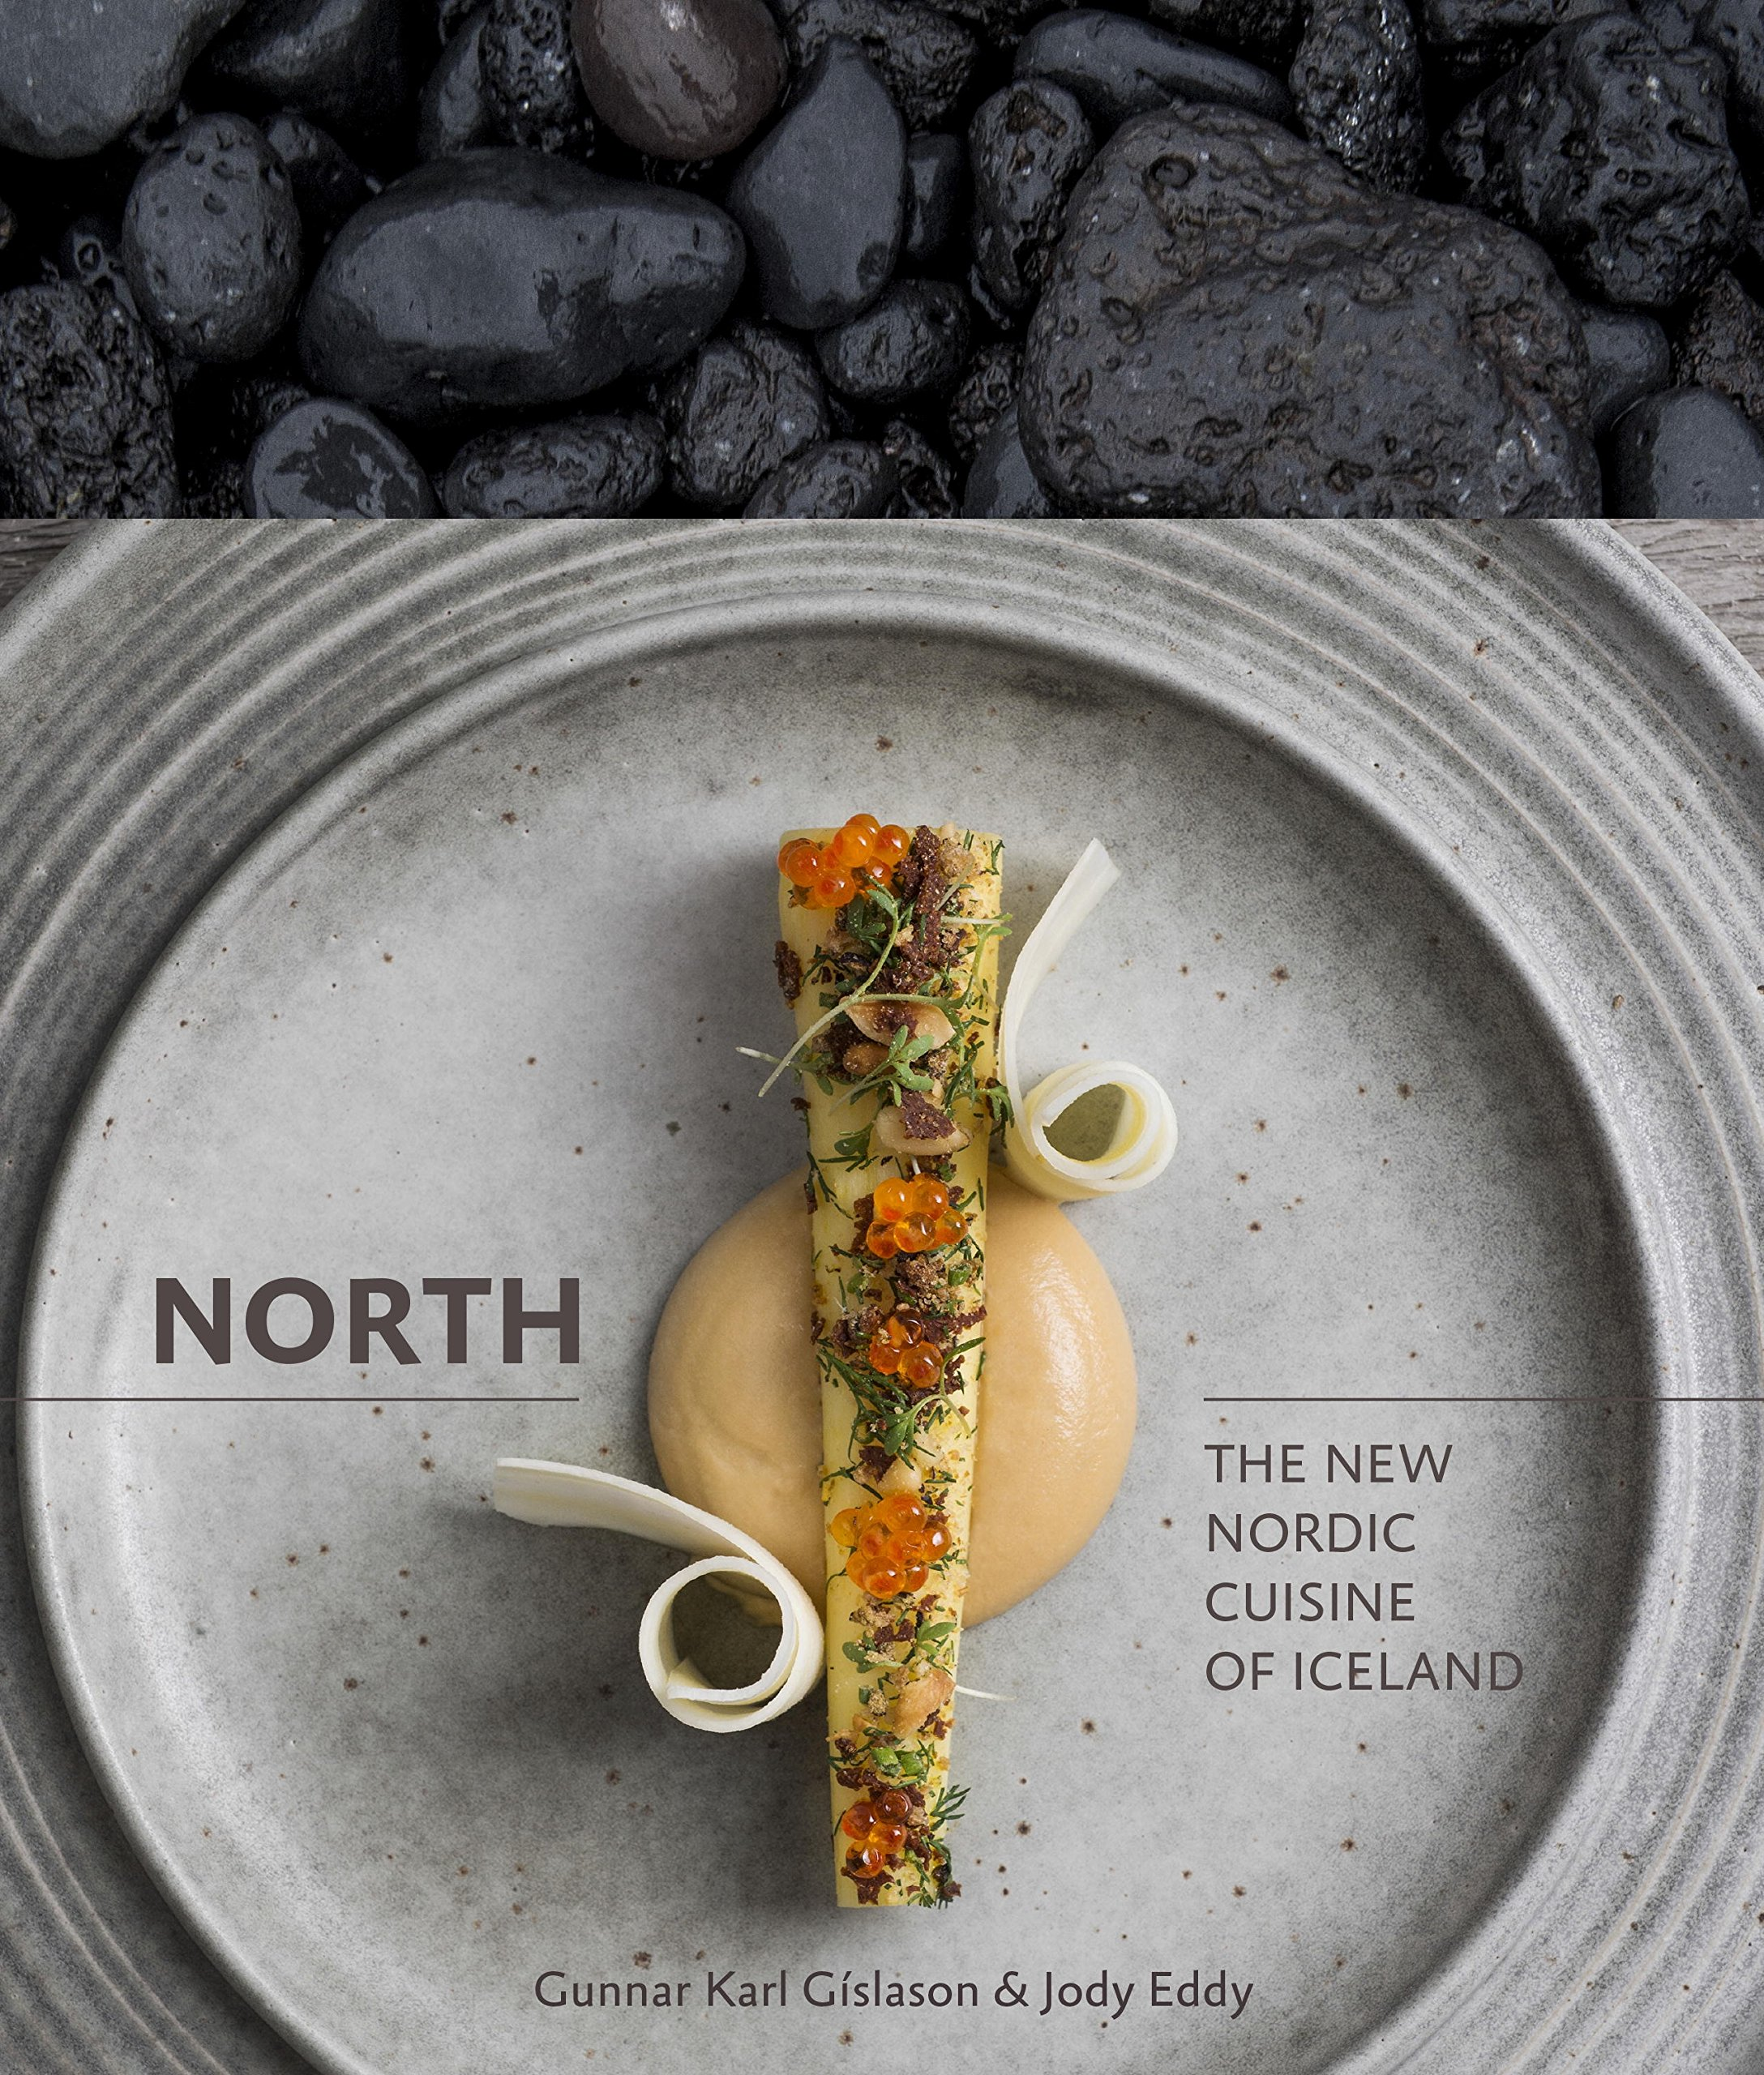 North New Nordic Cuisine Iceland product image